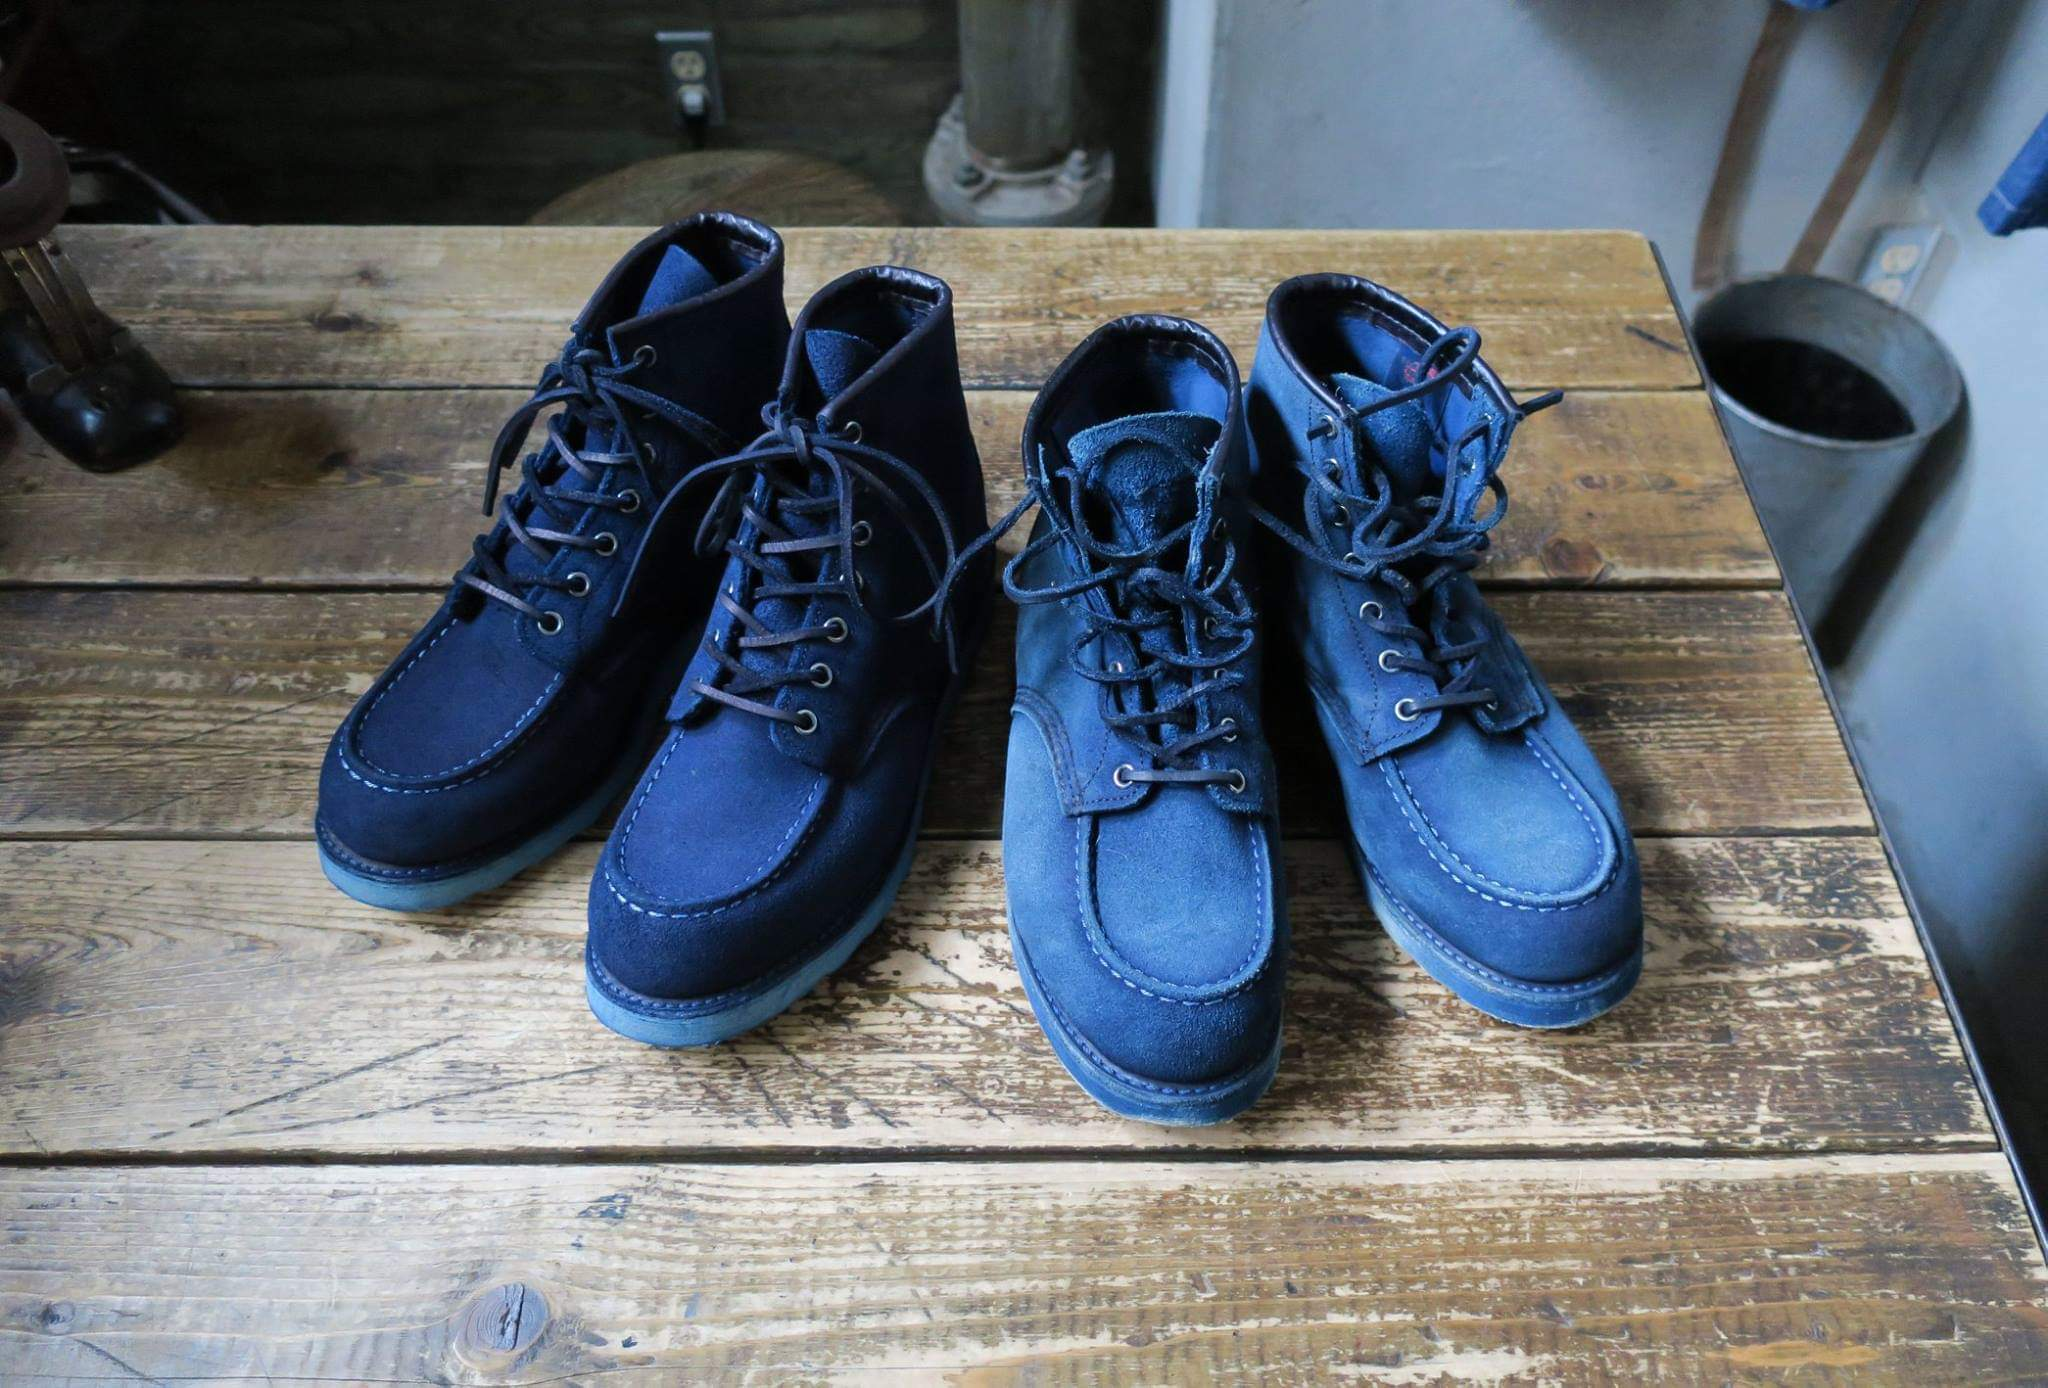 Red wing heritage 8173 Indigo over dye